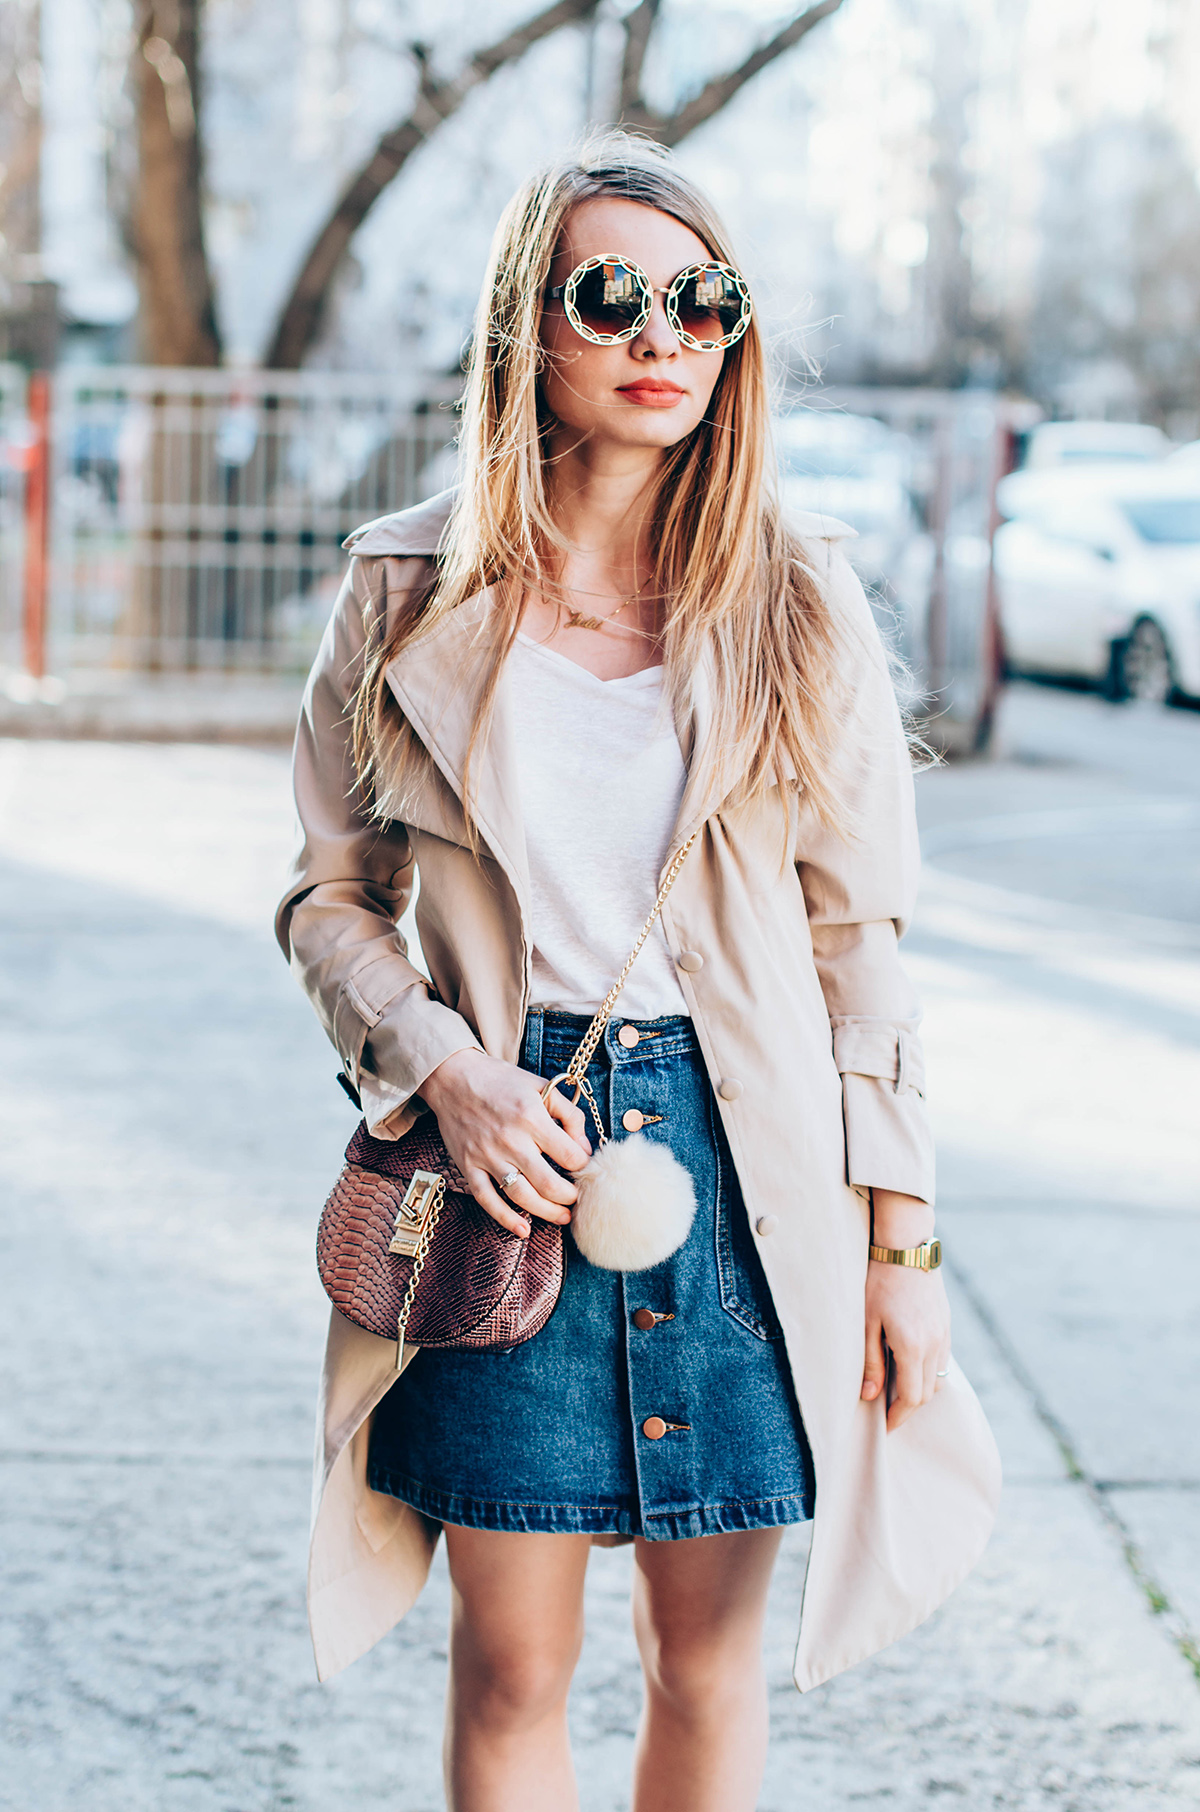 shein-buttoned-denim-skirt-trench-coat-outfit-snake-chloe-bag-fur-pom-pom-outfit (2)